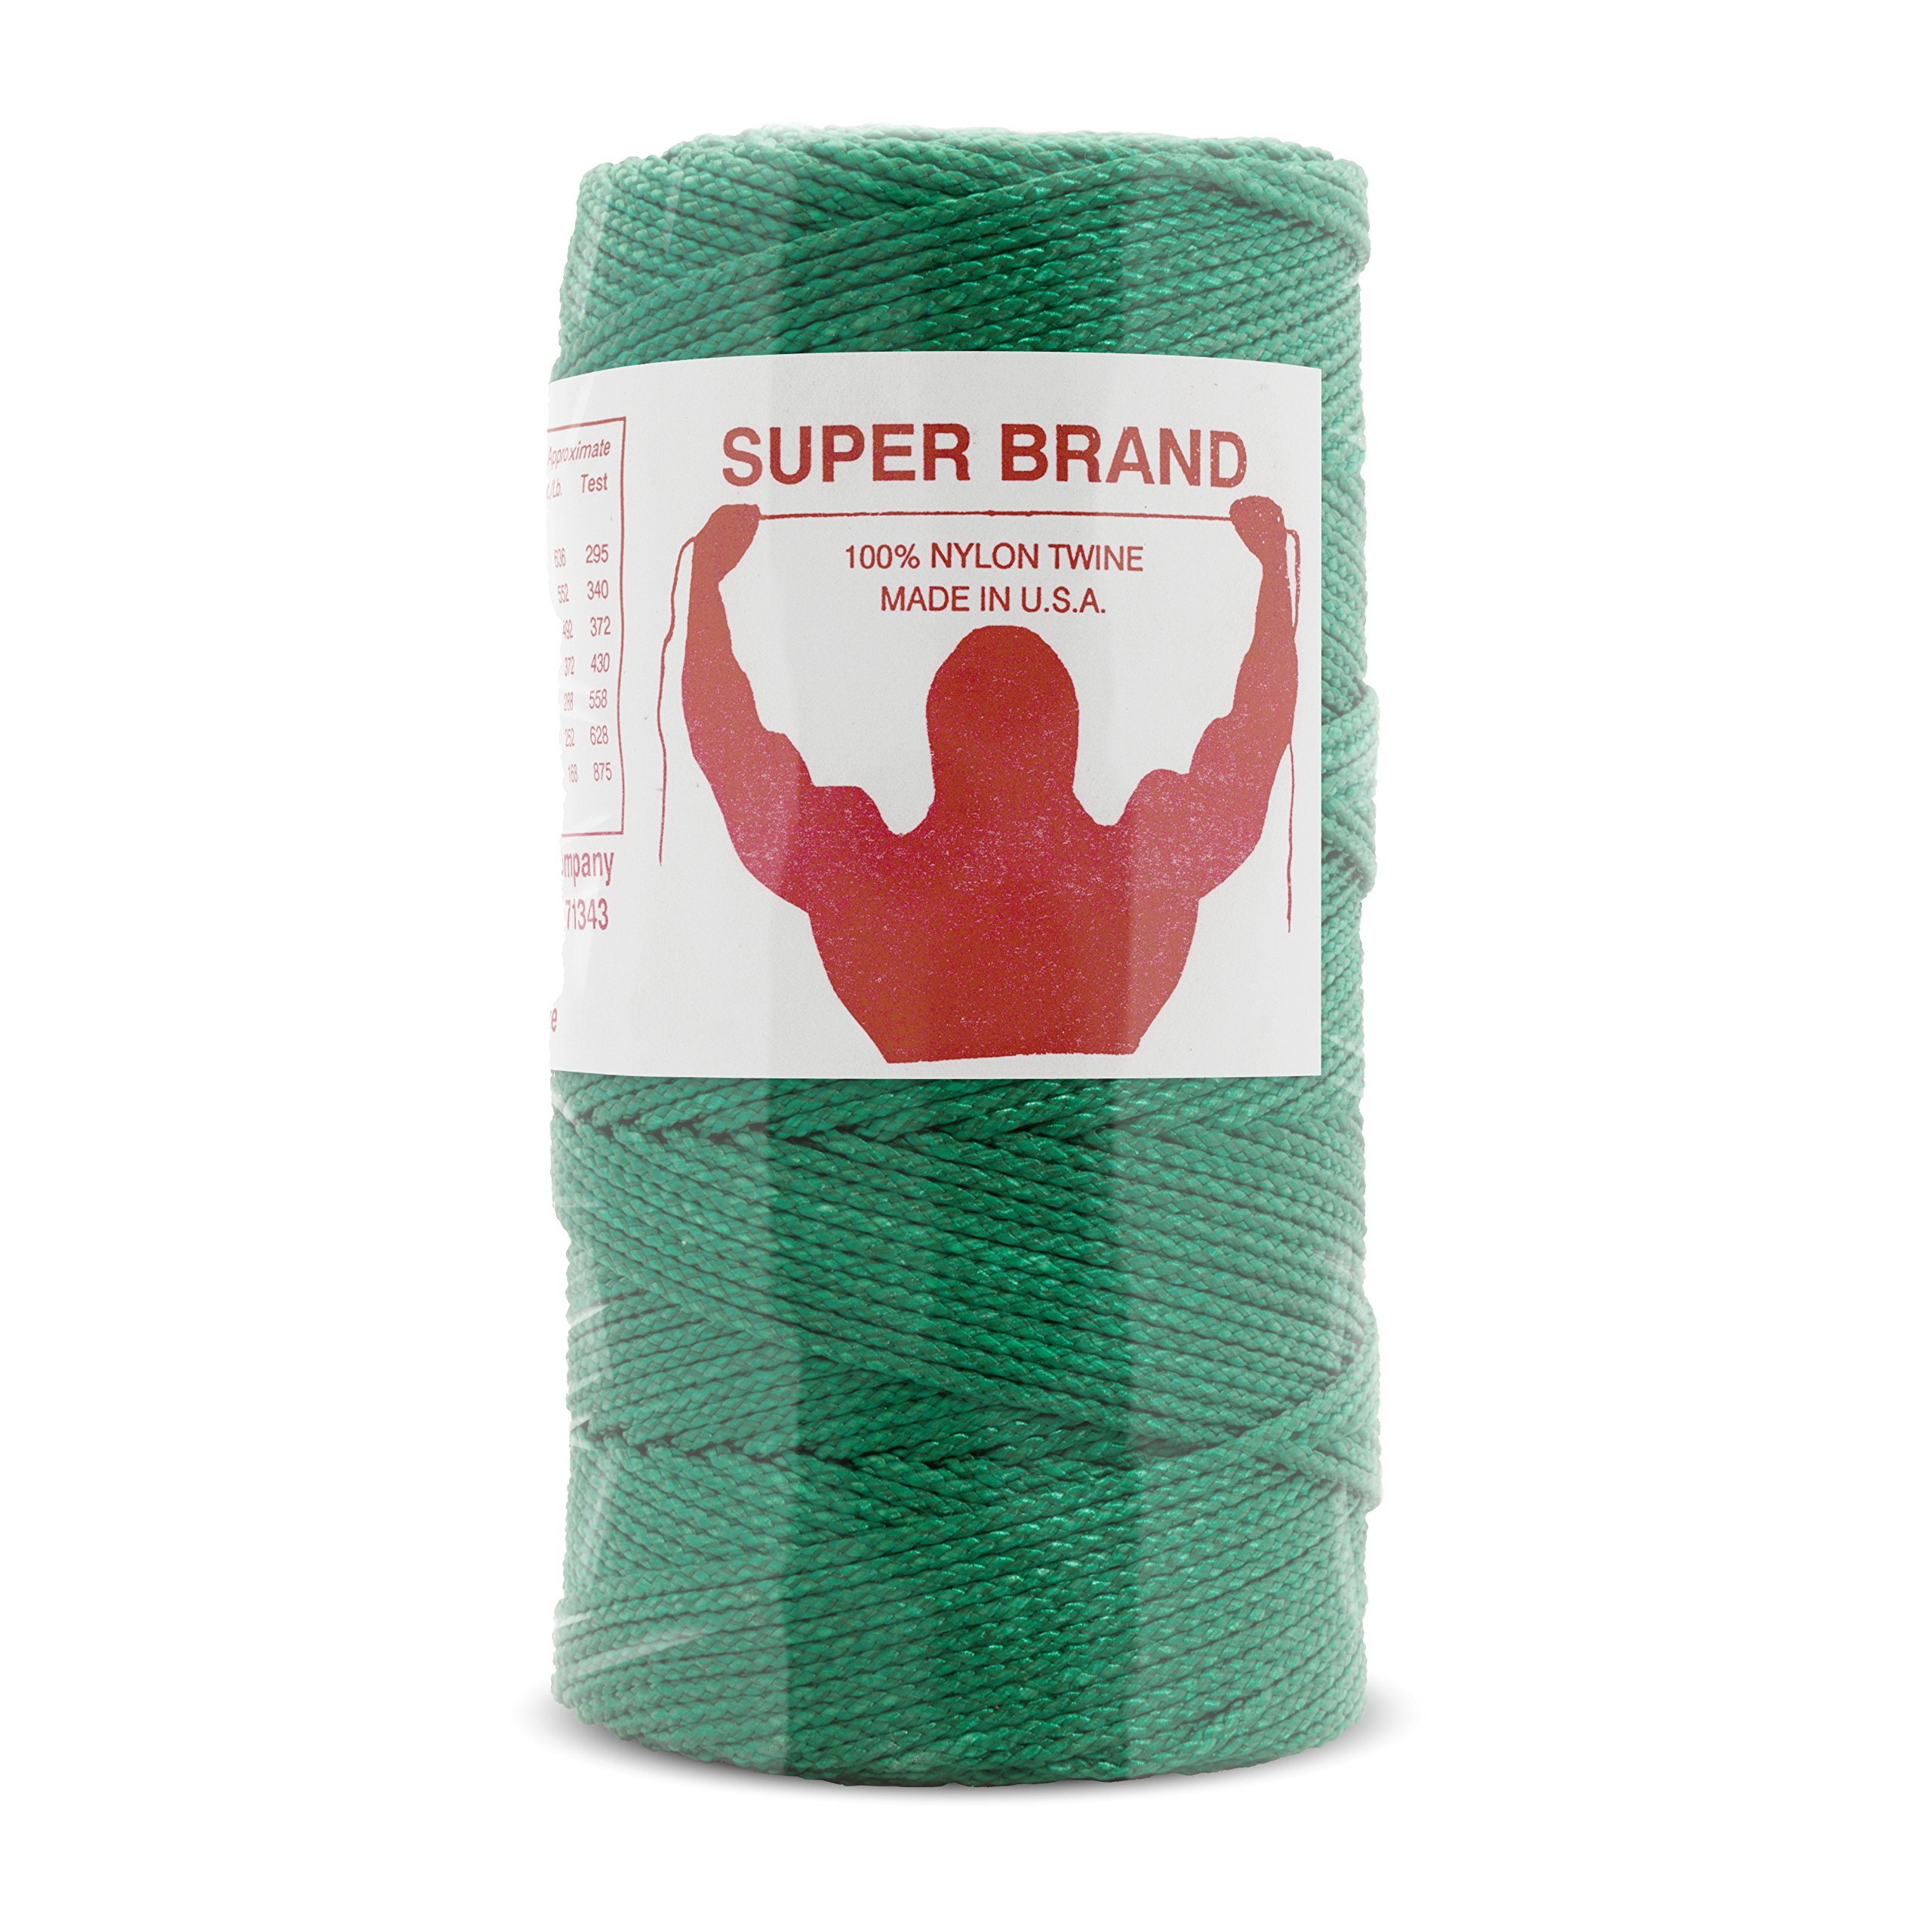 Green Nylon Twine, Braided. Size #60, 1/4 lb 6-pack